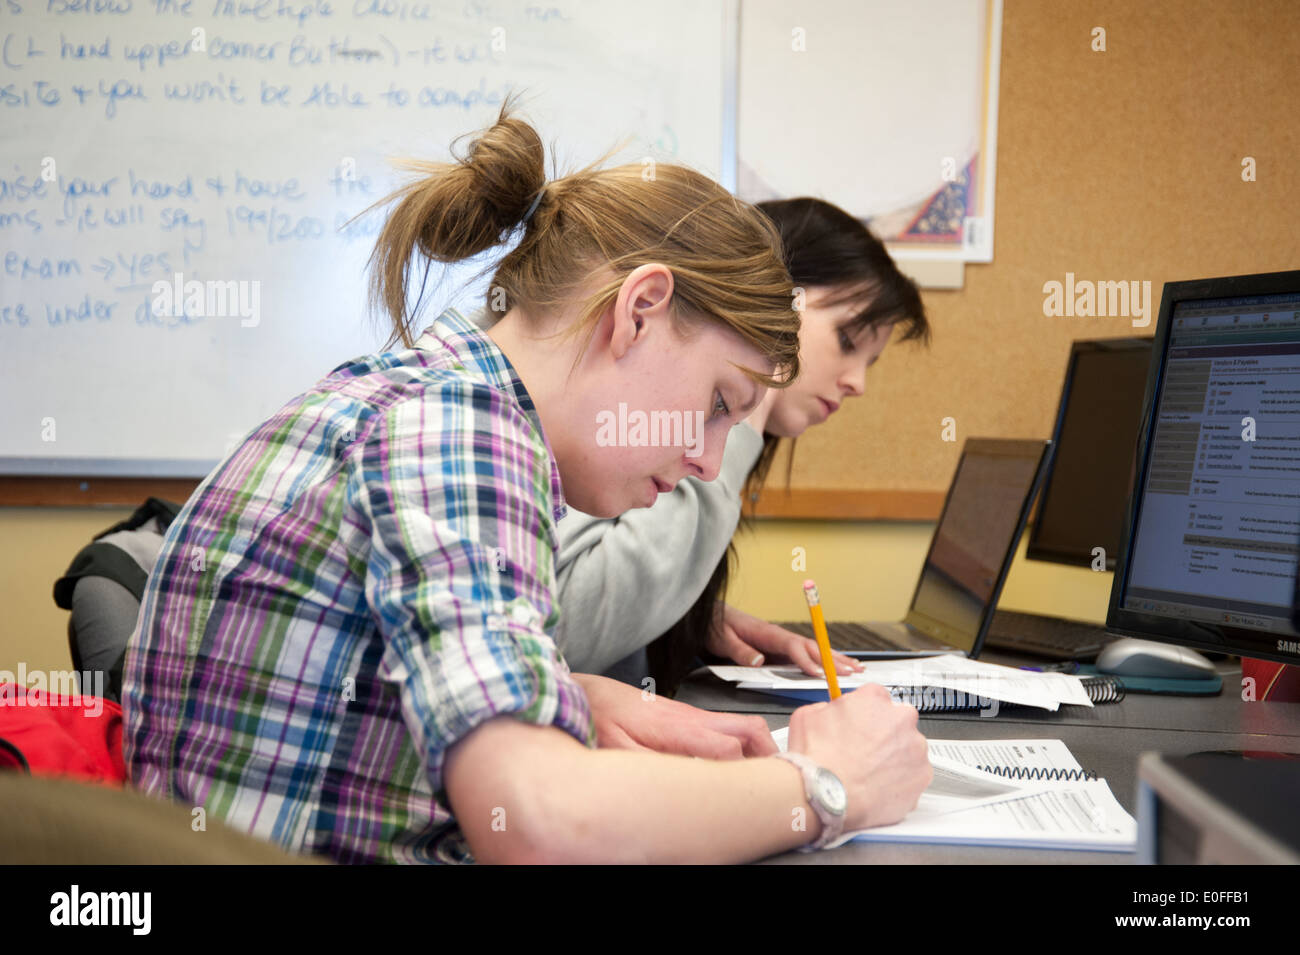 Adult women students in a learning environment classroom with computers - Stock Image